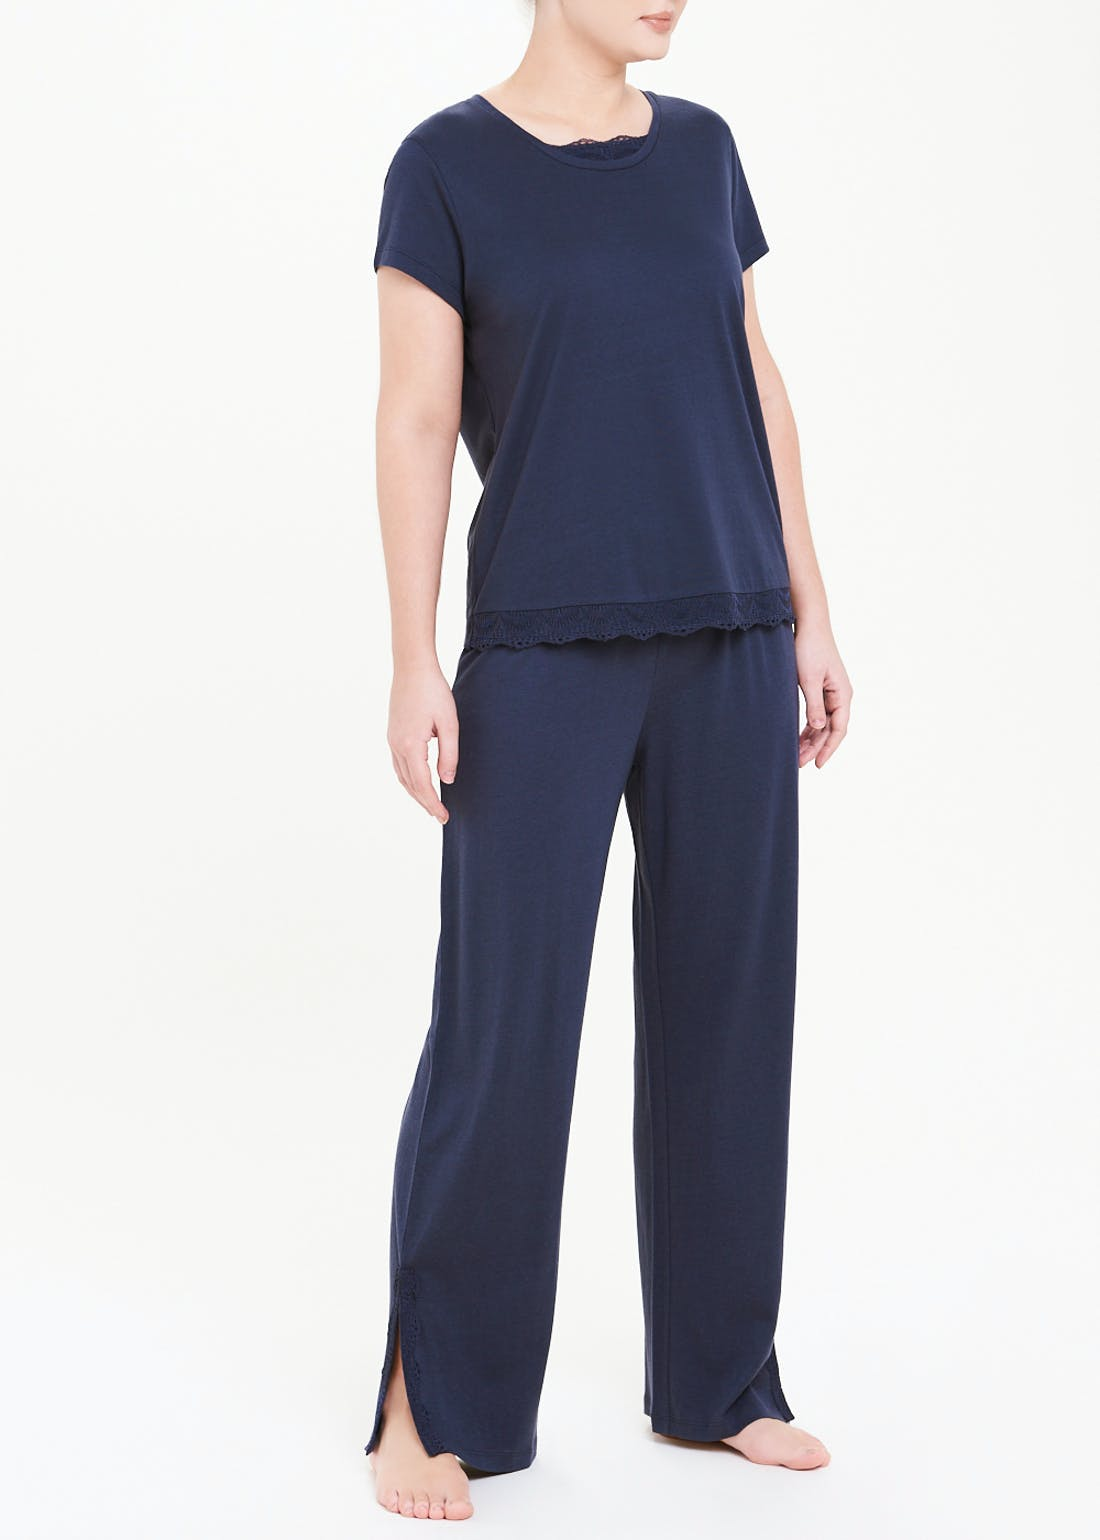 Super Soft Cotton Modal Pyjama Bottoms